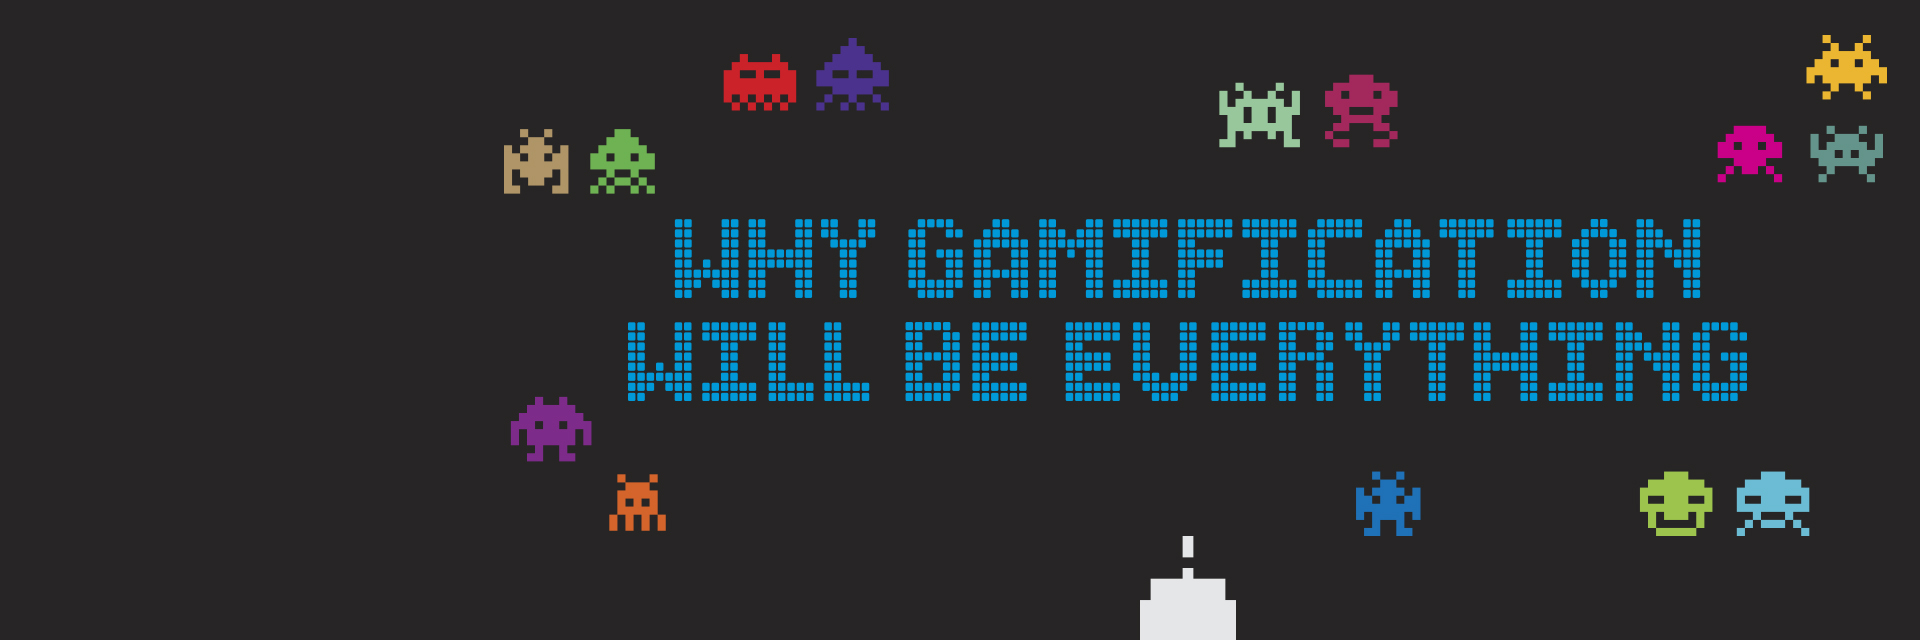 Dc presents: Why Gamification will be everything